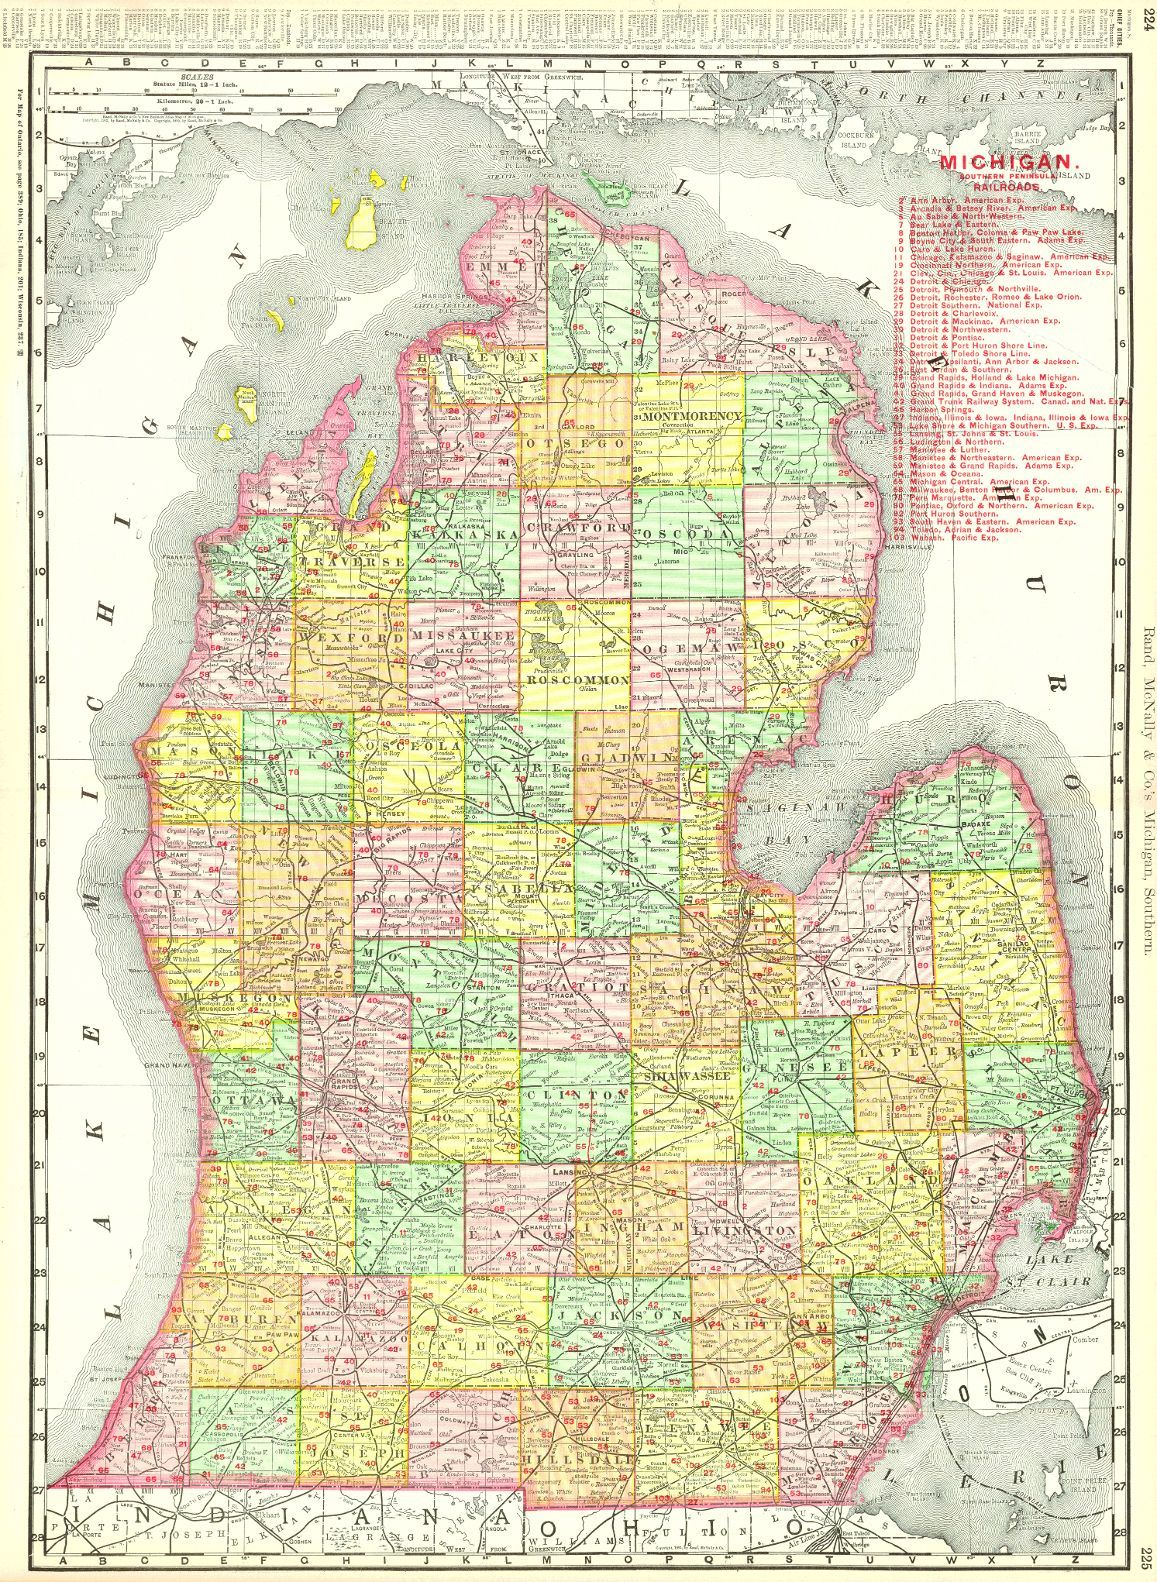 Rand mcnally cos new business atlas map of michigan michigan s new business atlas map of michigan michigan southern published rand mcnally co c1902 chicago publicscrutiny Image collections